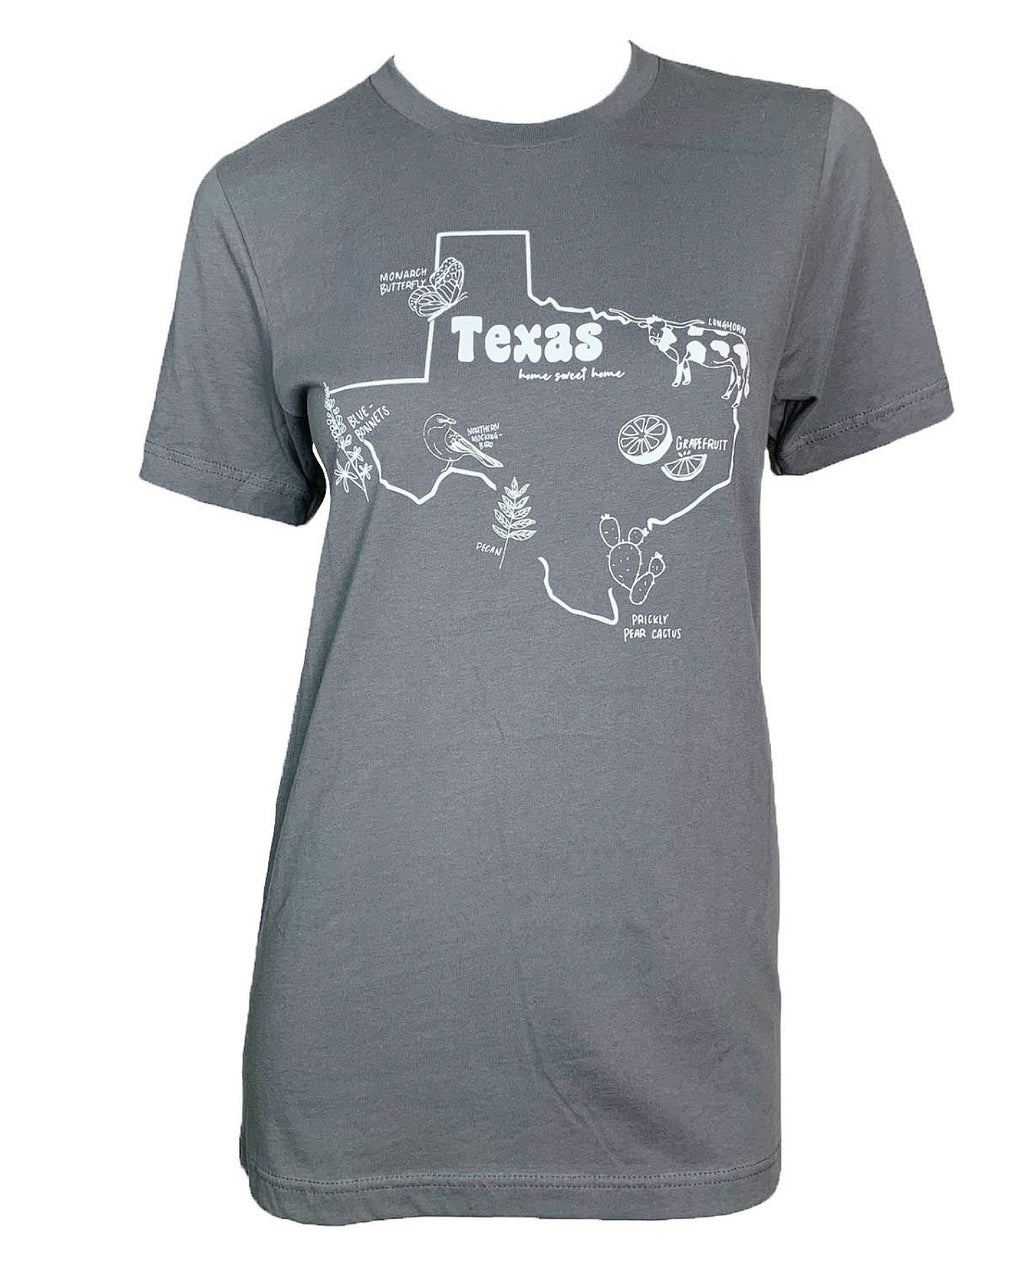 All About Texas T-Shirt